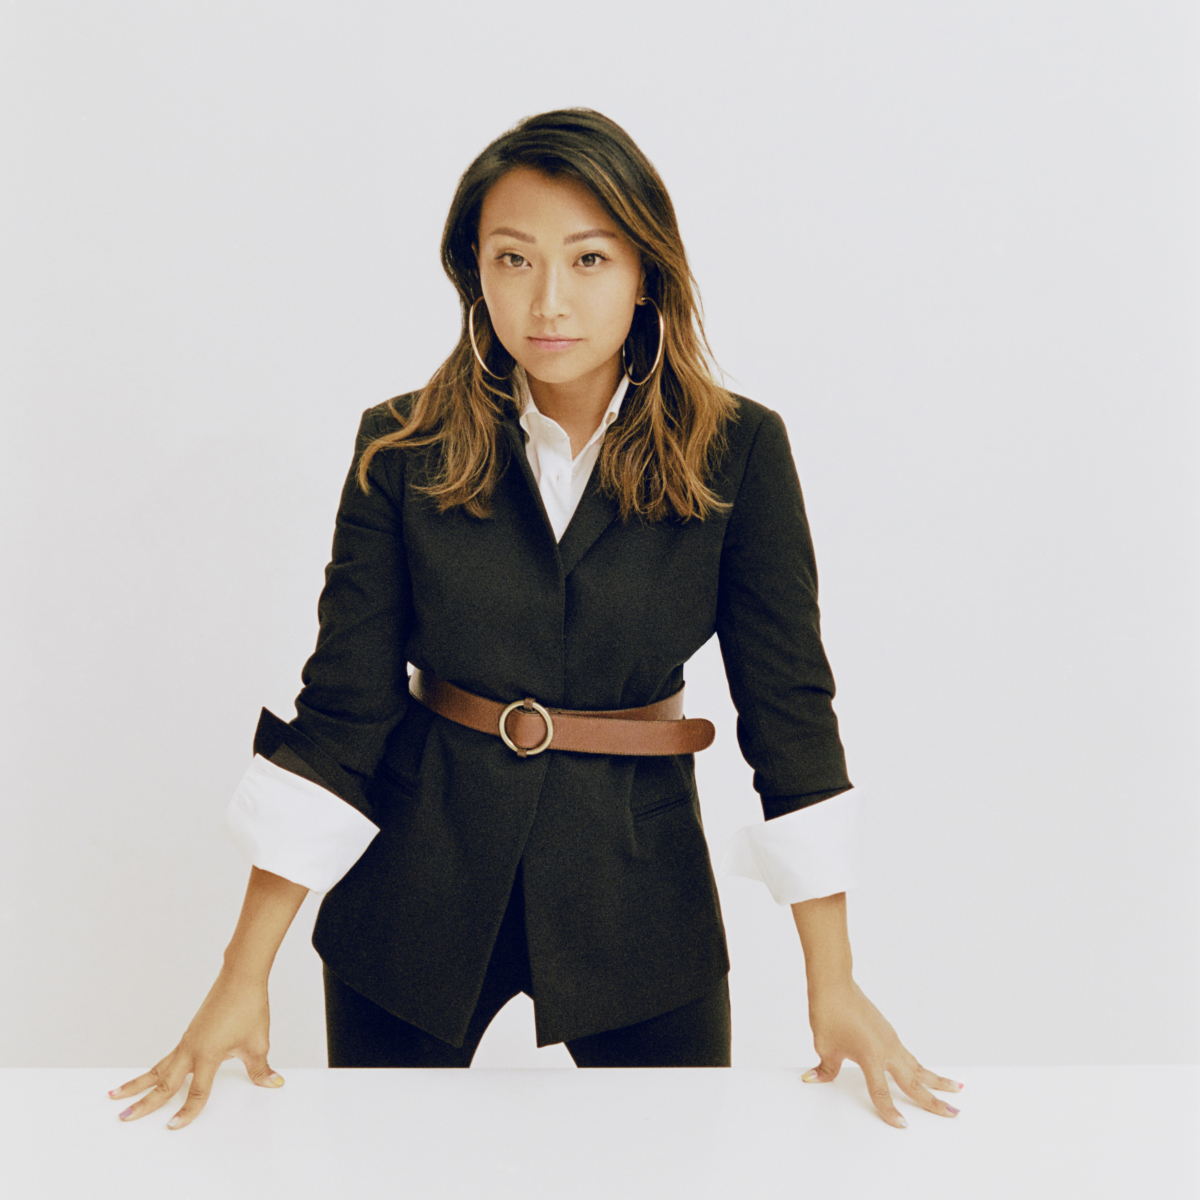 Veronica Chou on Fashion, Sustainability, and Entrepreneurship